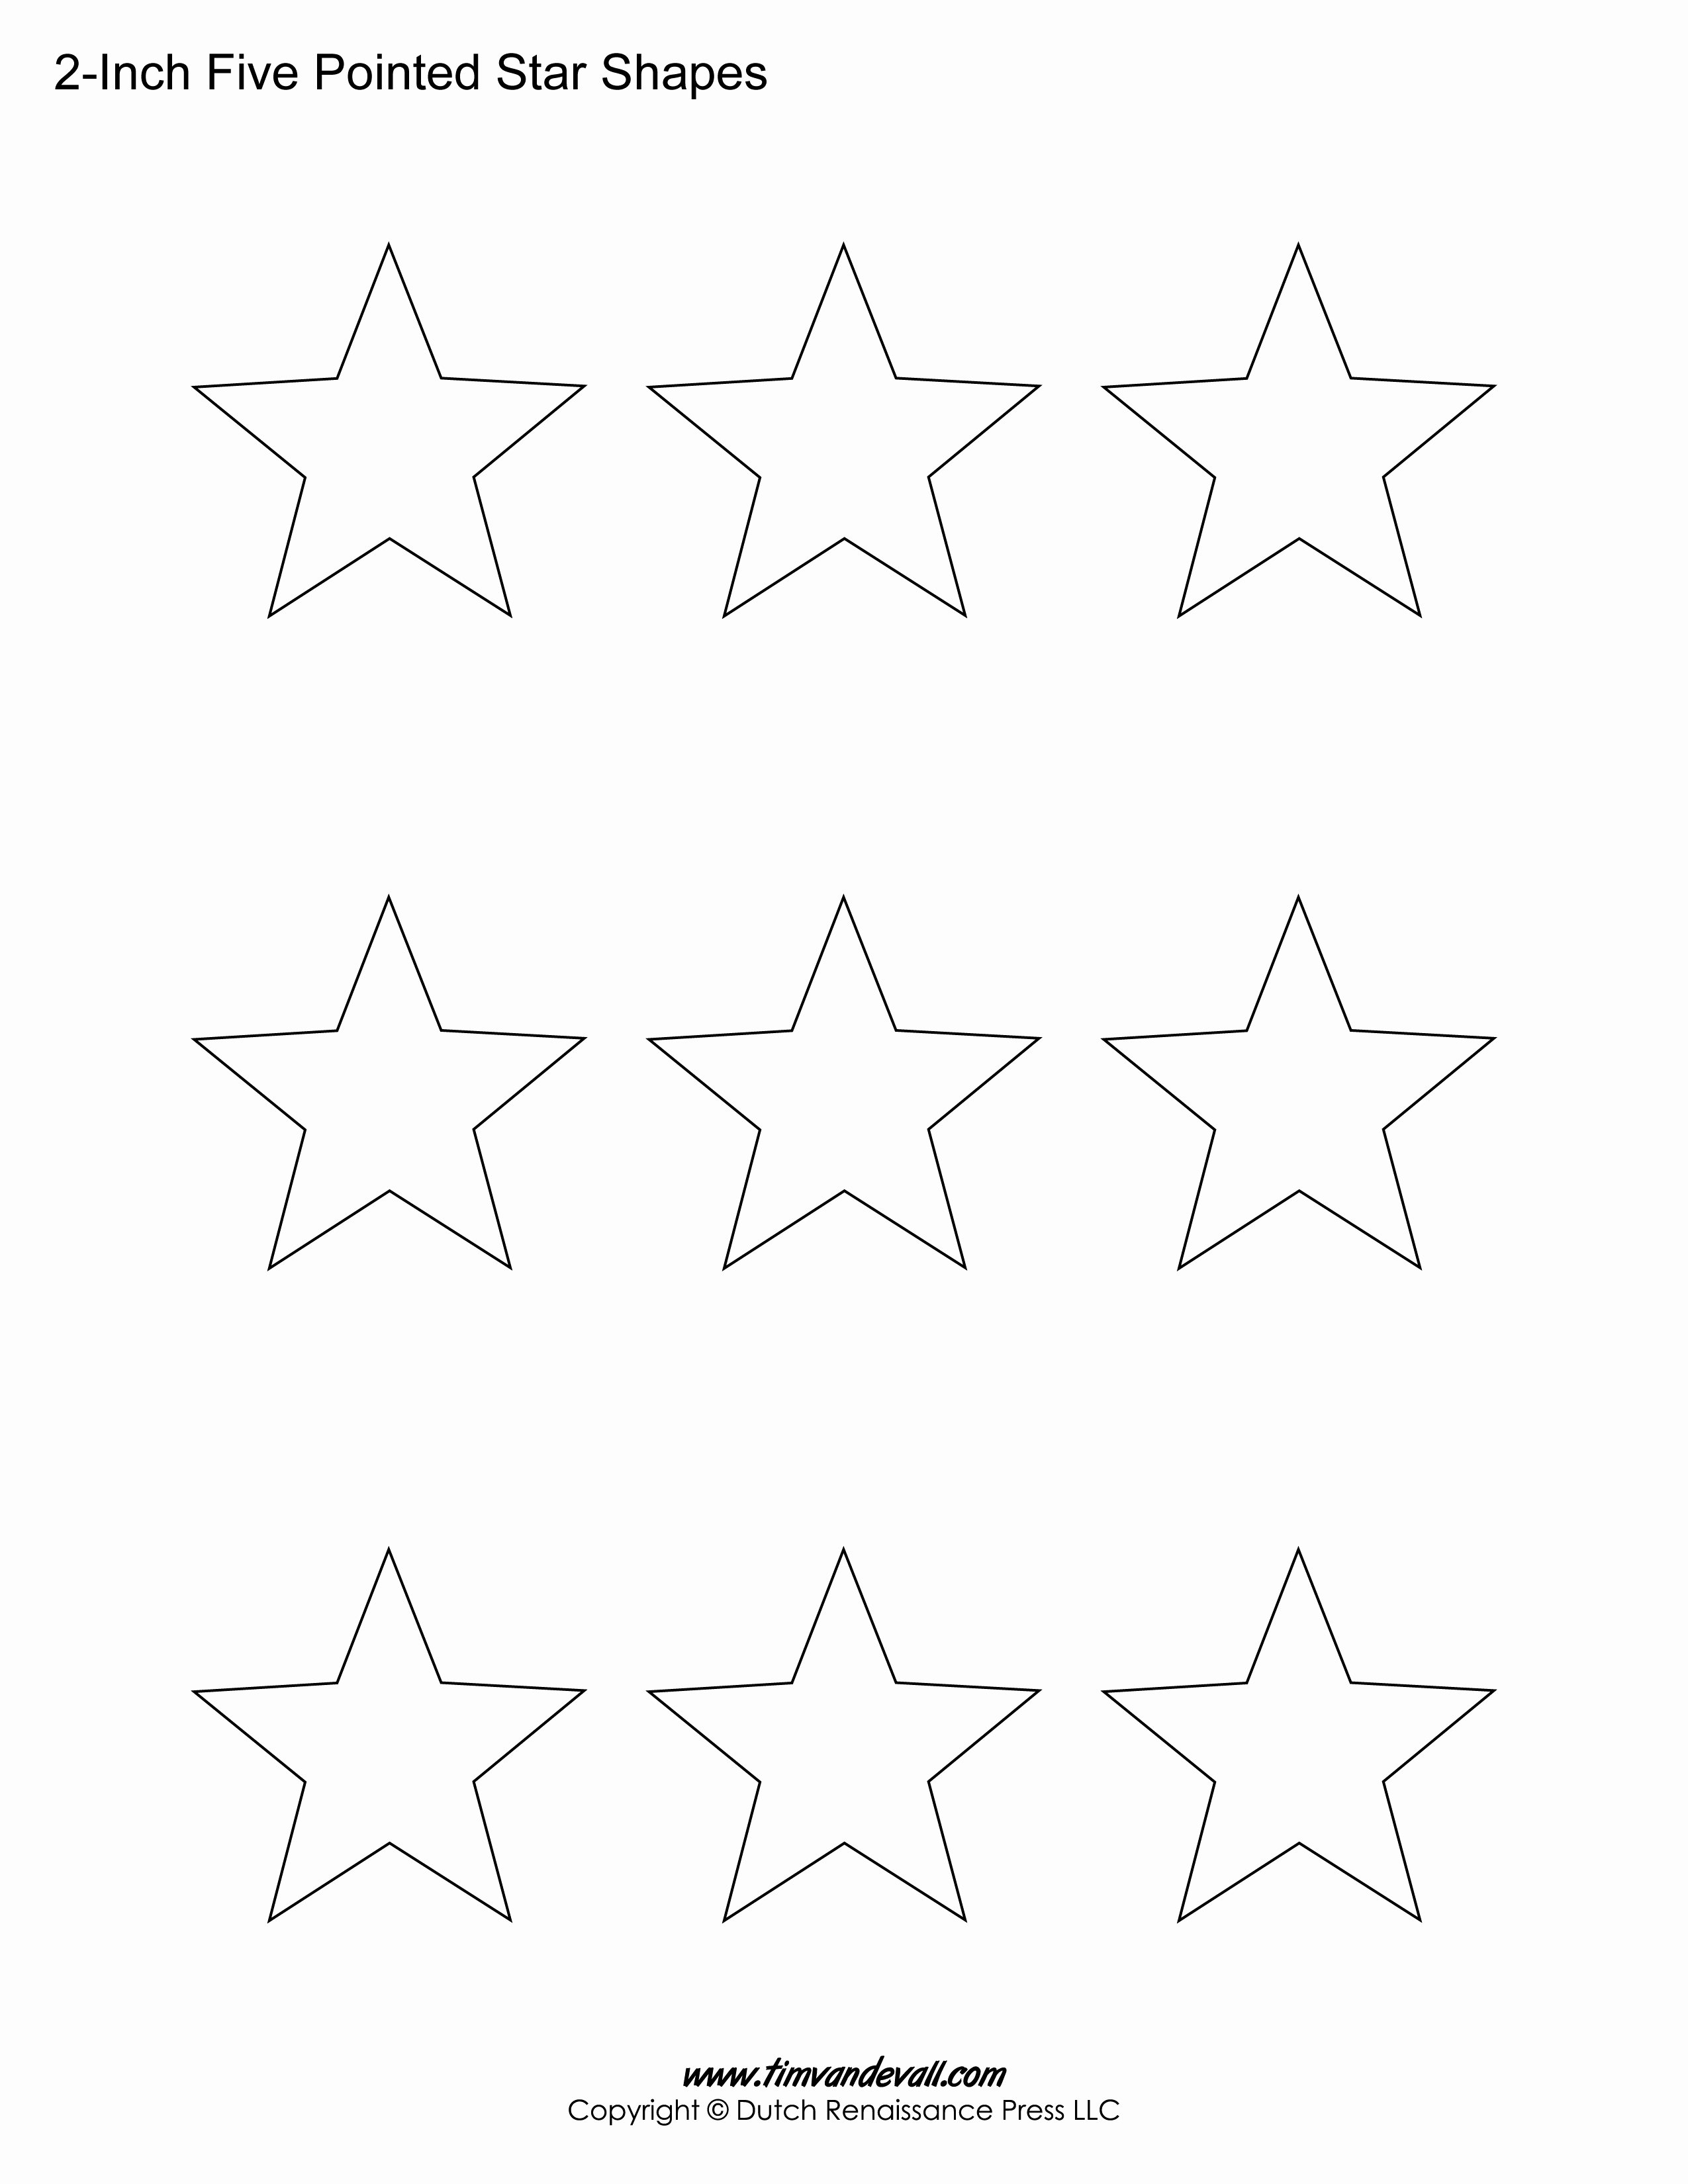 8 Point Star Template Printable Luxury Printable Five Pointed Star Templates Blank Shape Pdfs